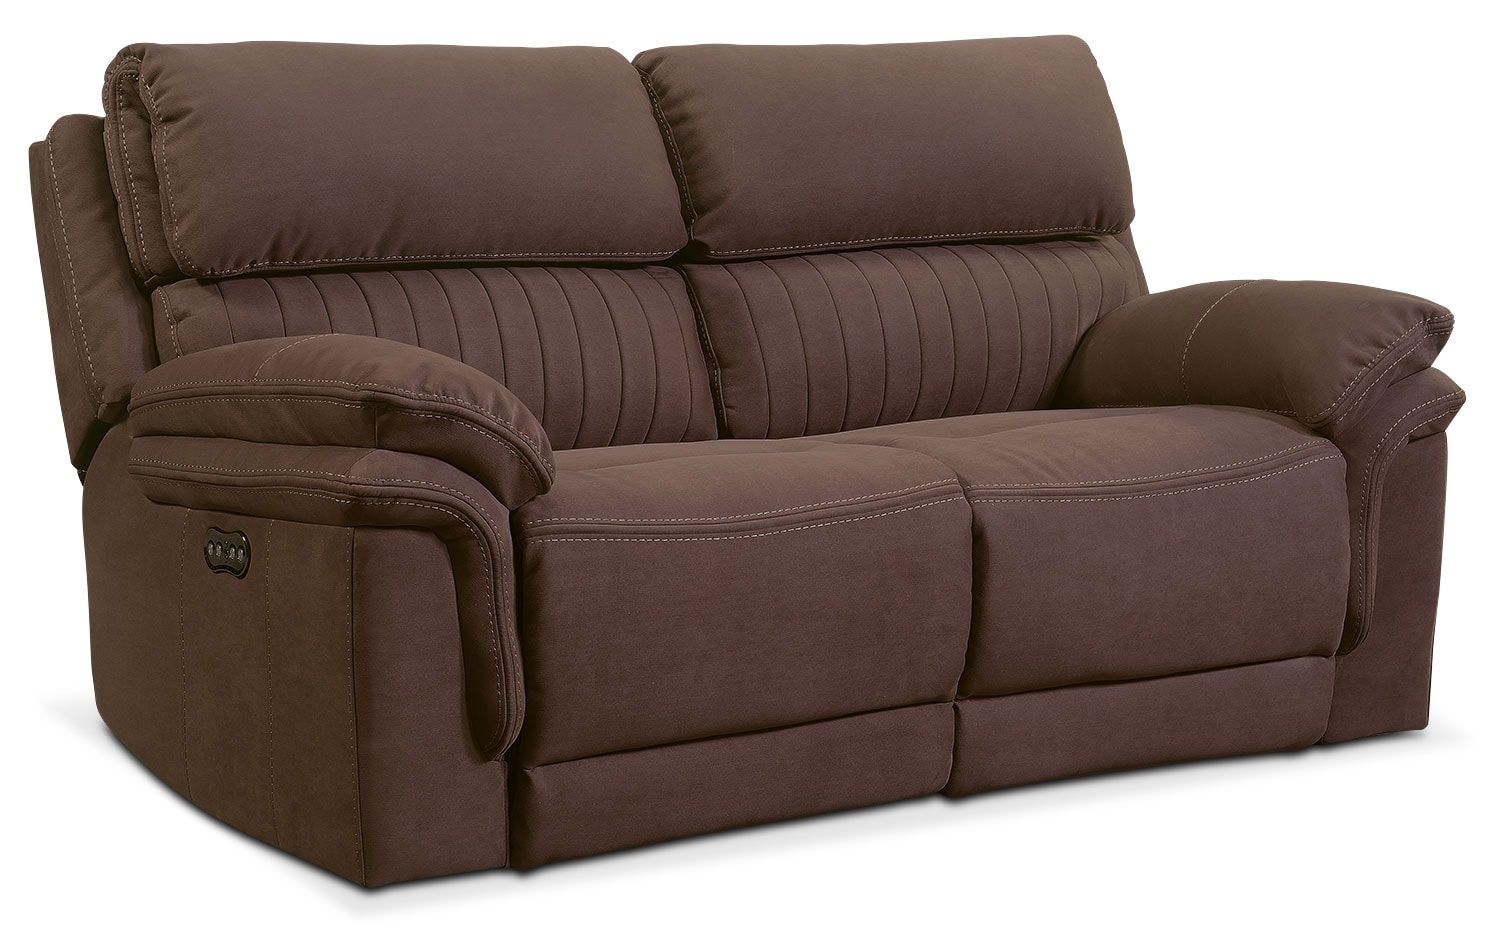 ... Power Reclining Loveseat - Mocha. Hover to zoom  sc 1 st  Value City Furniture & Monterey 2-Piece Power Reclining Loveseat - Mocha | Value City ... islam-shia.org